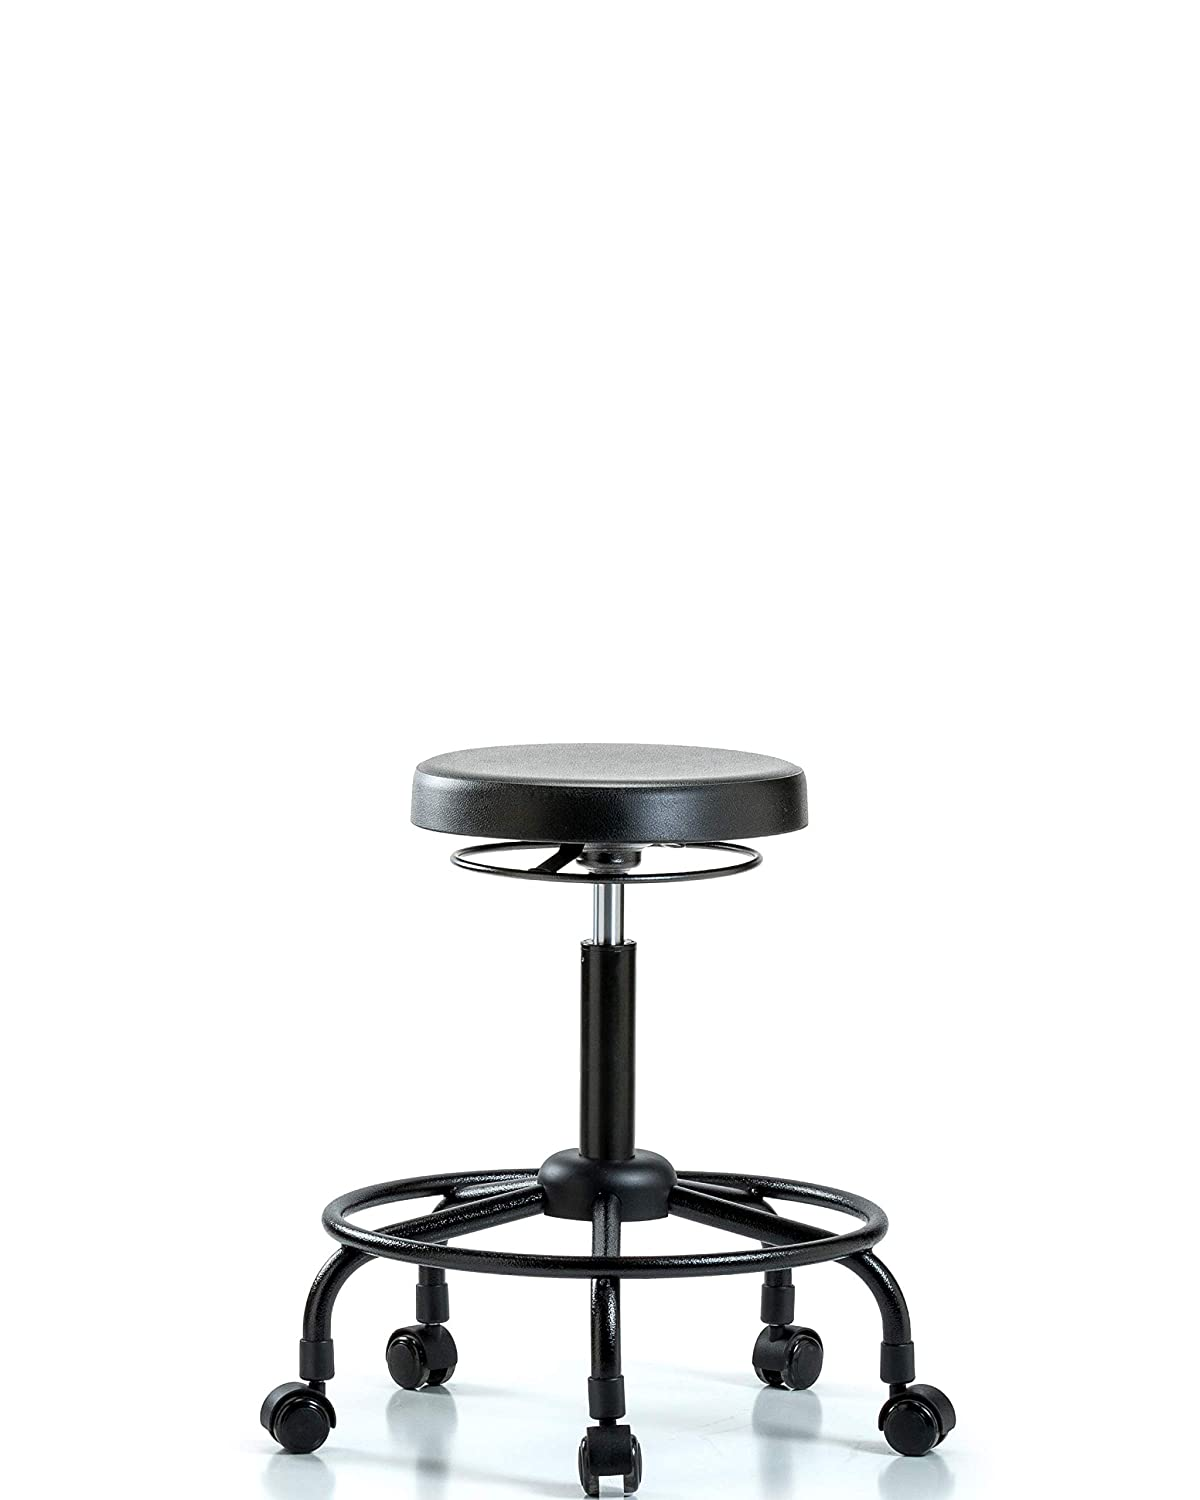 LabTech Price reduction Seating LT43858 Medium Round Polyurethane Cheap super special price Stool Bench